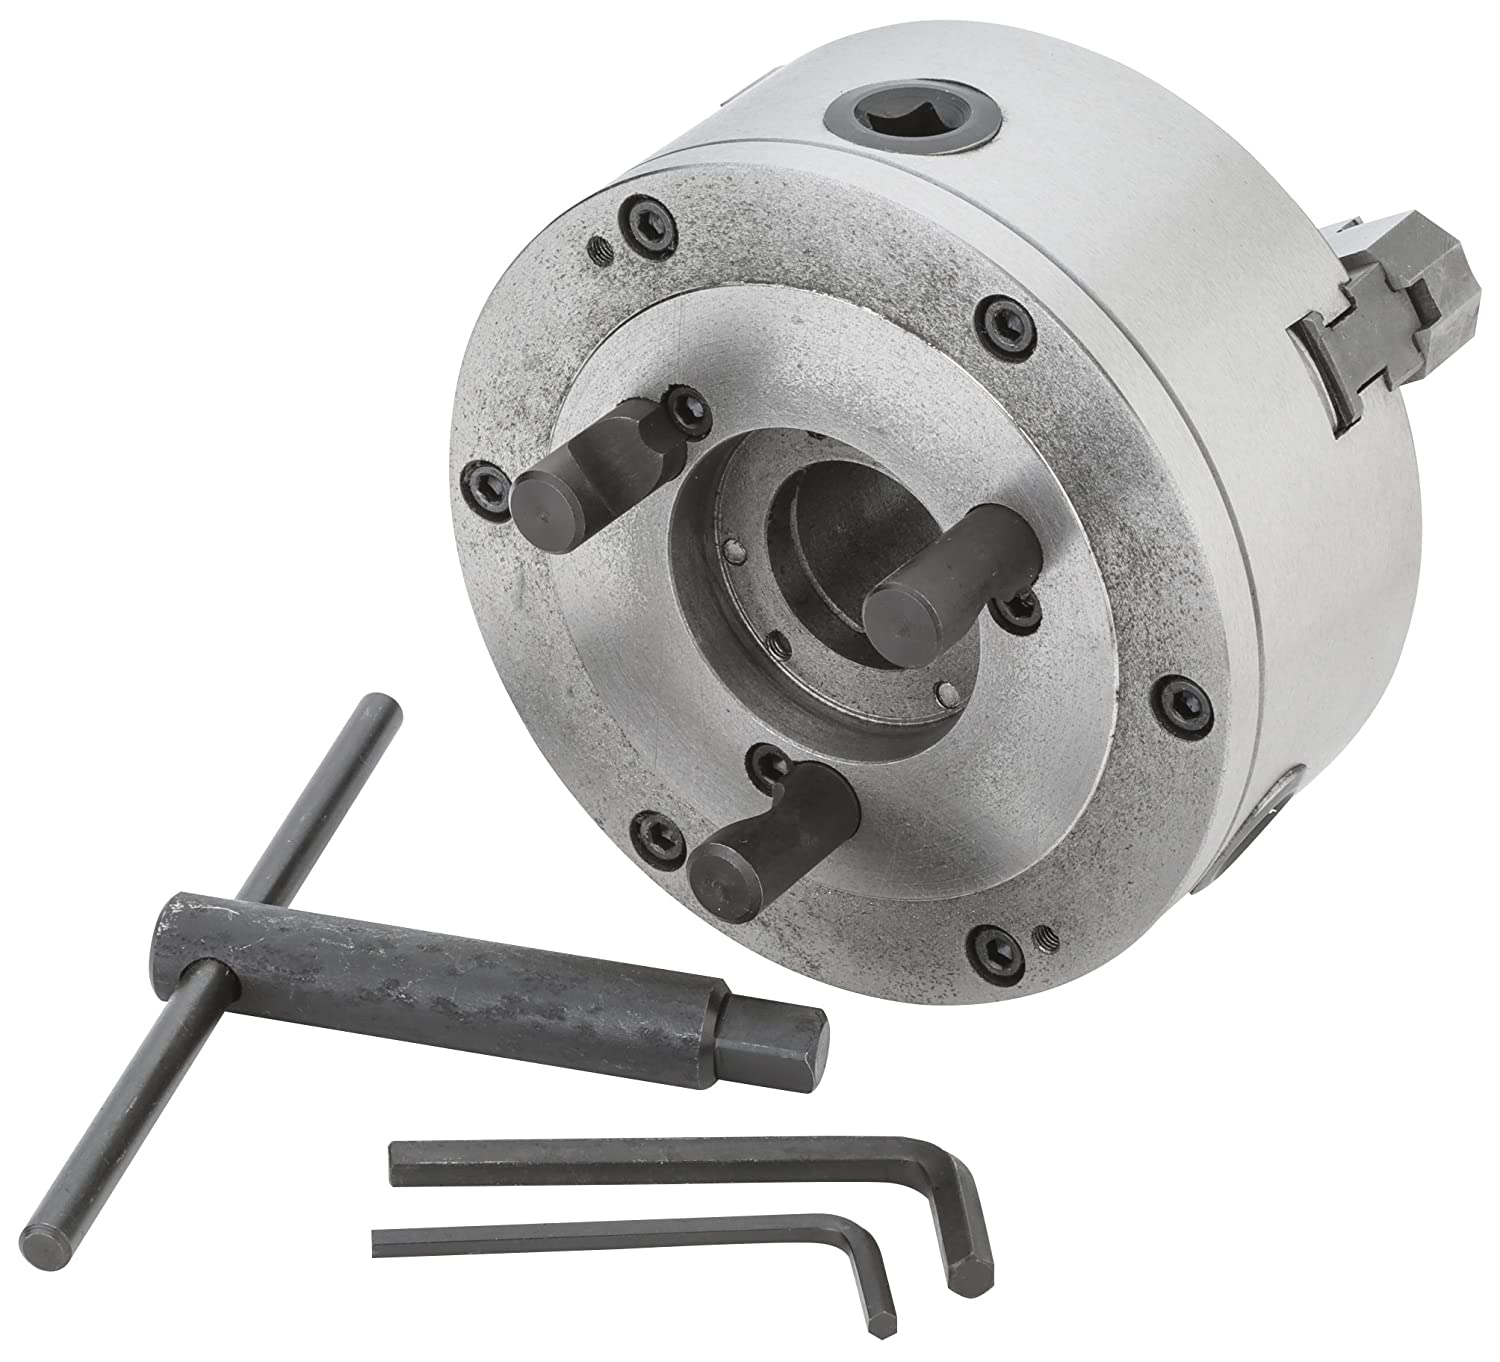 Grizzly G9819 6-Inch 3-Jaw Scrol Length Chuck D1-4